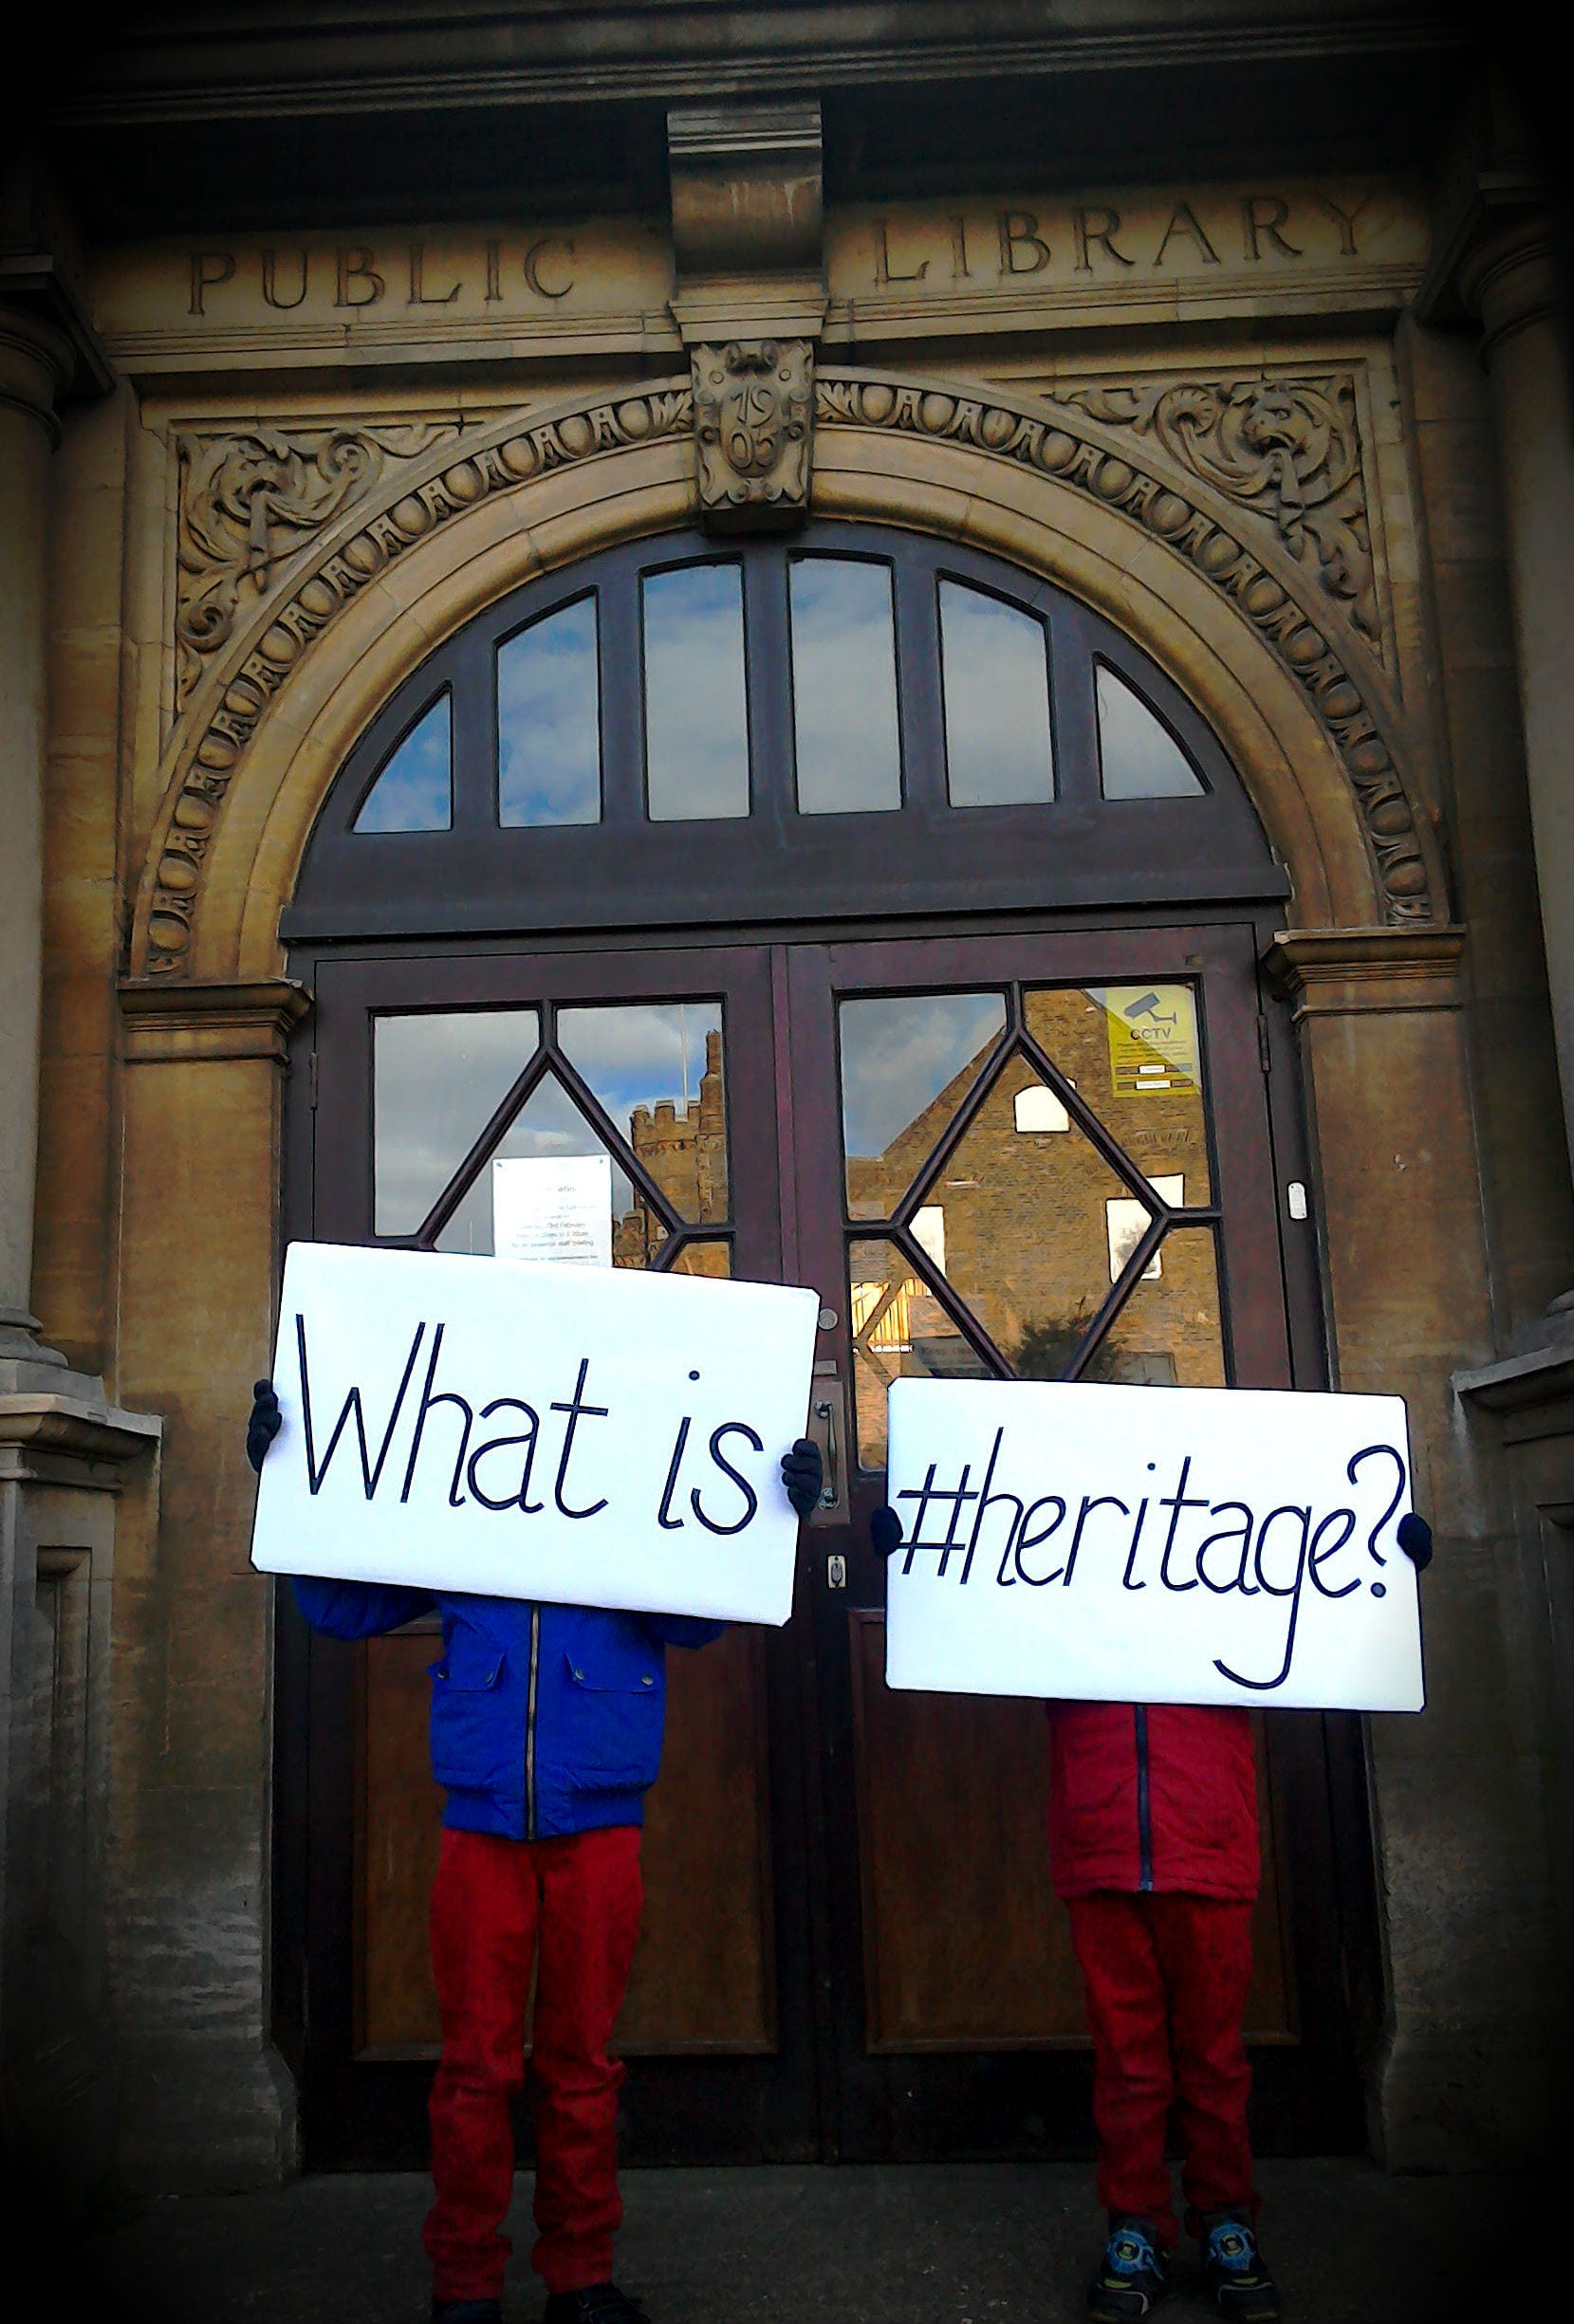 What is #heritage? The entrance to Gainsborough Public Library.